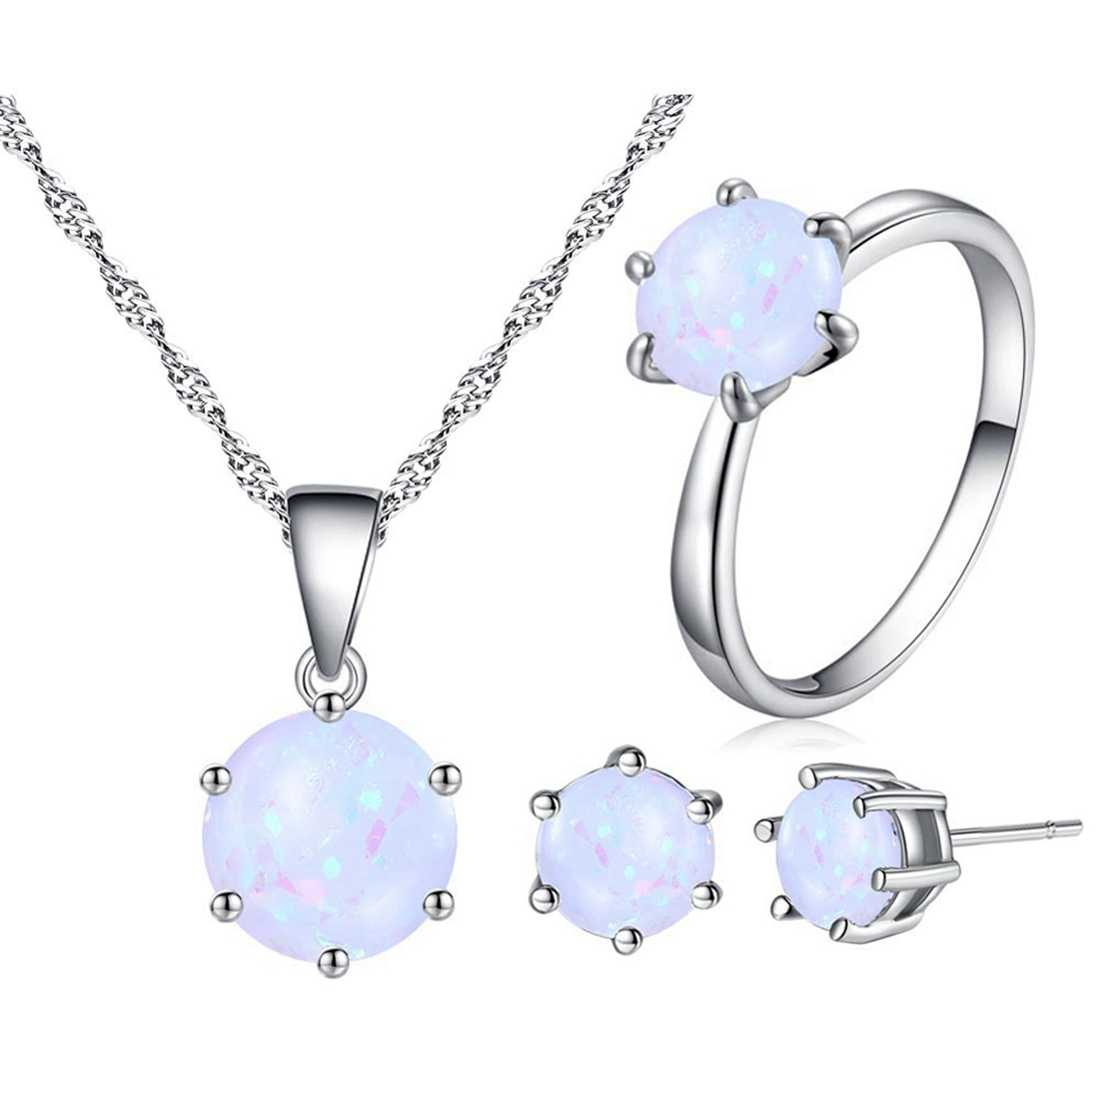 Beiver Opal Jewelry For Women Round Shape Pendant Ring Fashion Silver Color Chain Earrings Ring Sets Wedding Party Jewelry